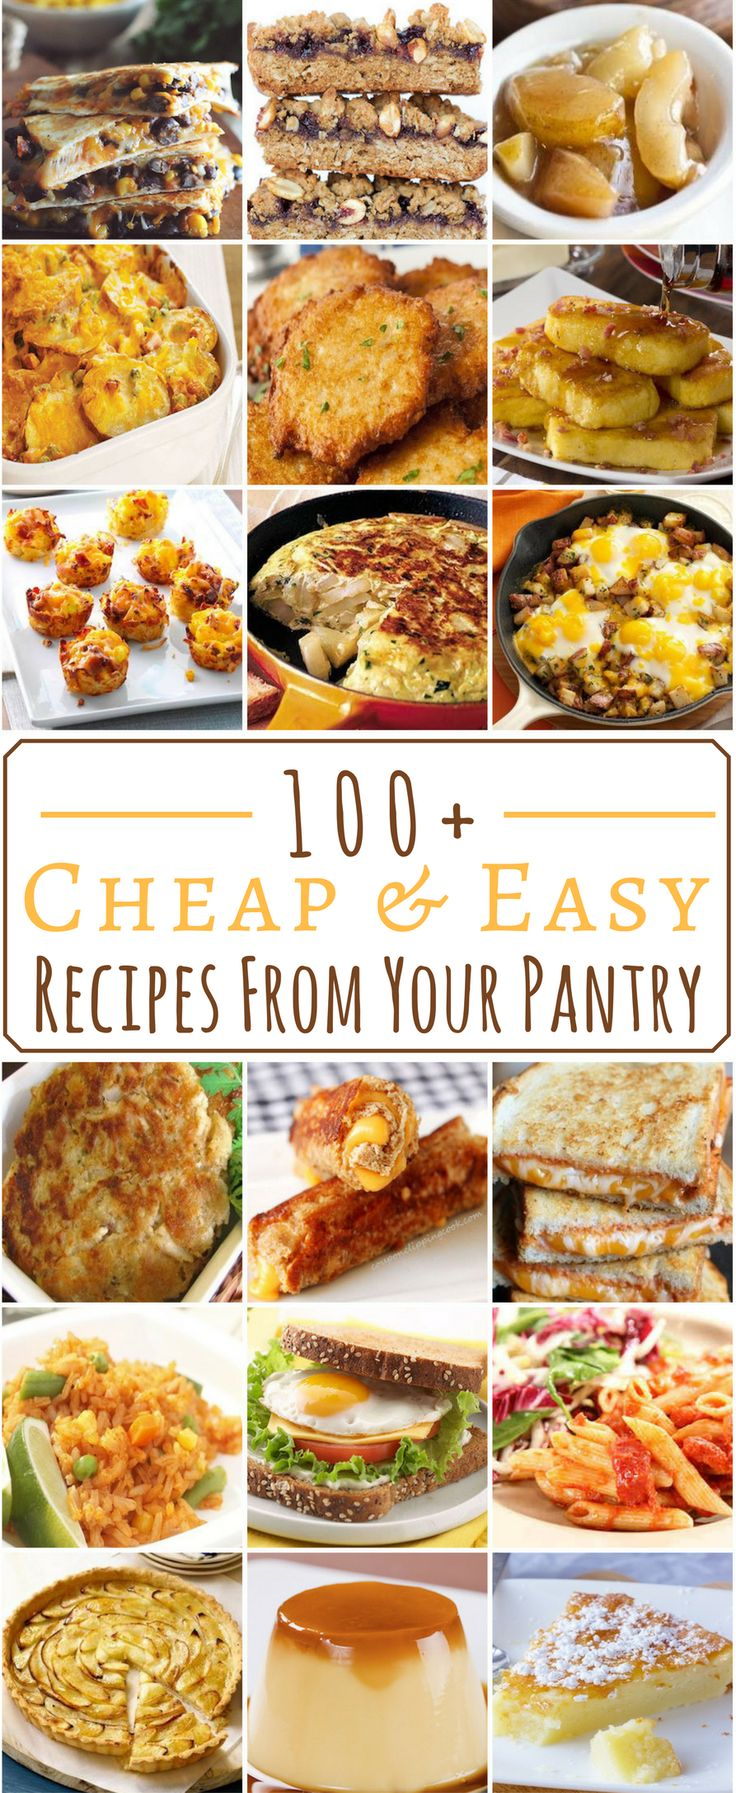 100 Cheap and Easy Pantry Recipes